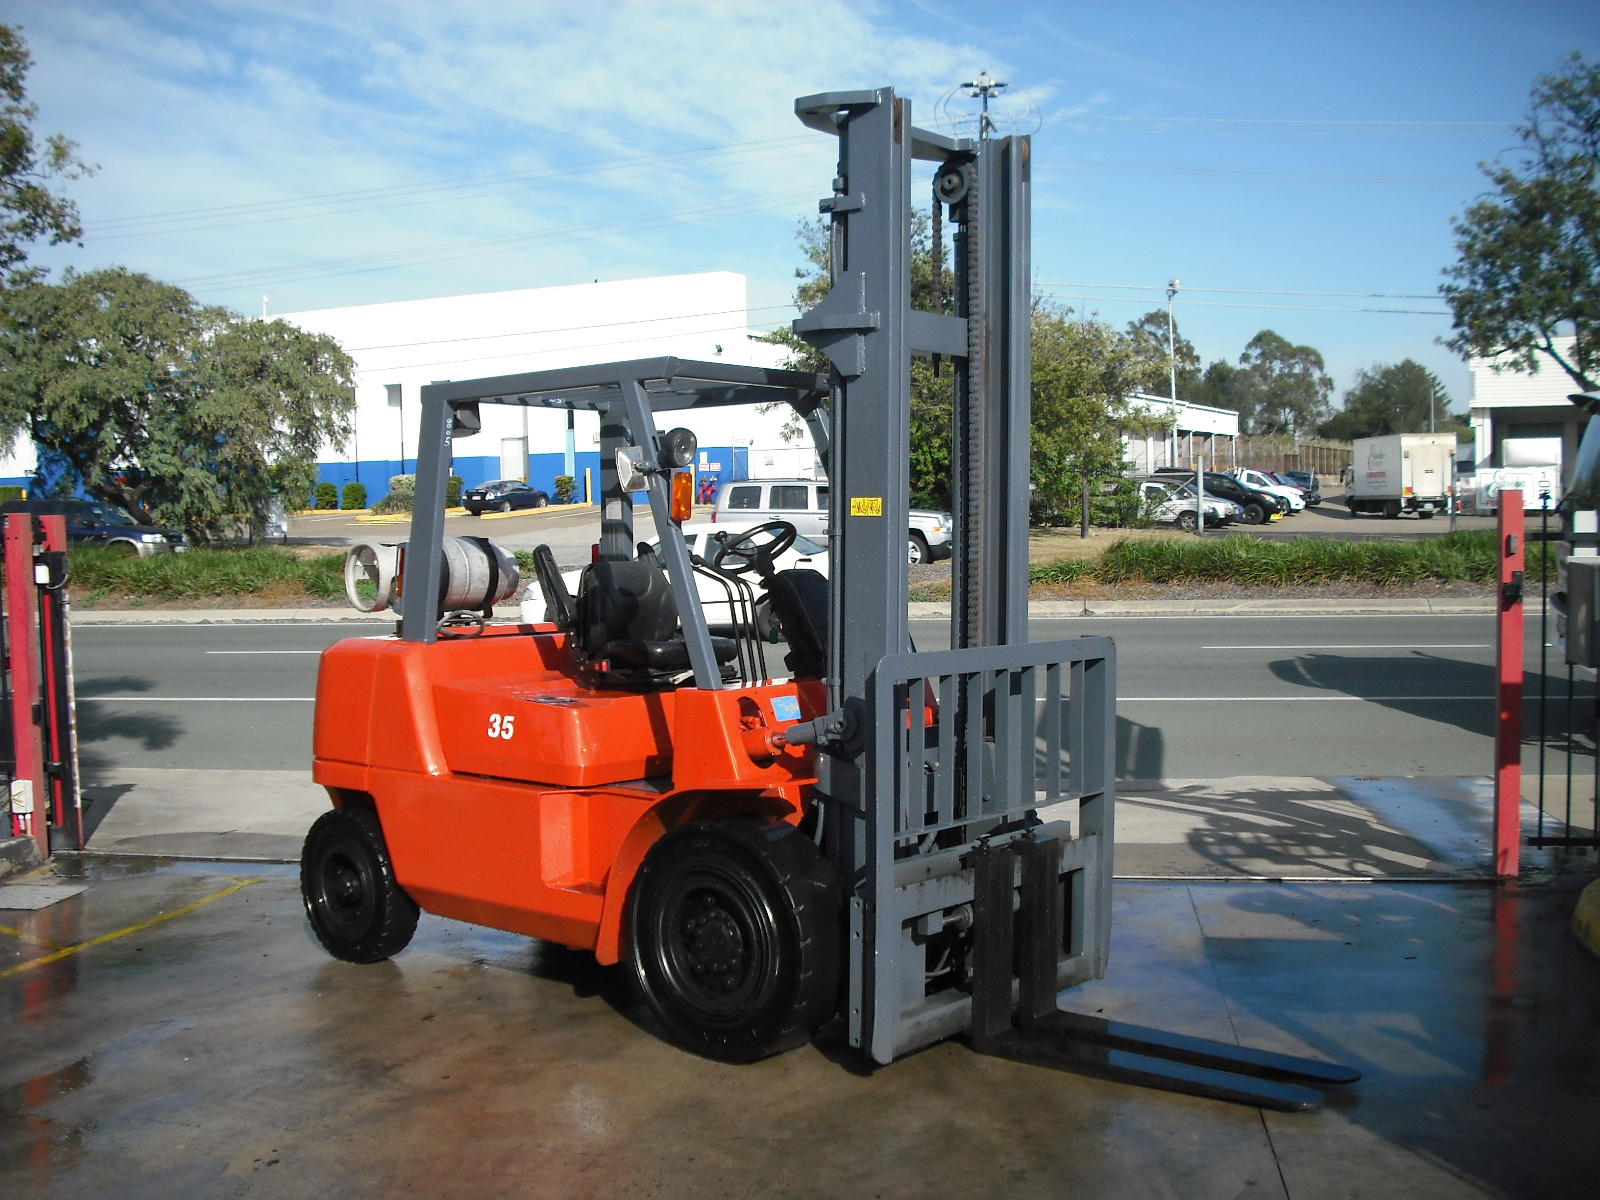 Nissan FO4G4OUT Forklift 4.5m Unit 805 For Sale - Scotties Forklifts - Coopers Plains, Brisbane